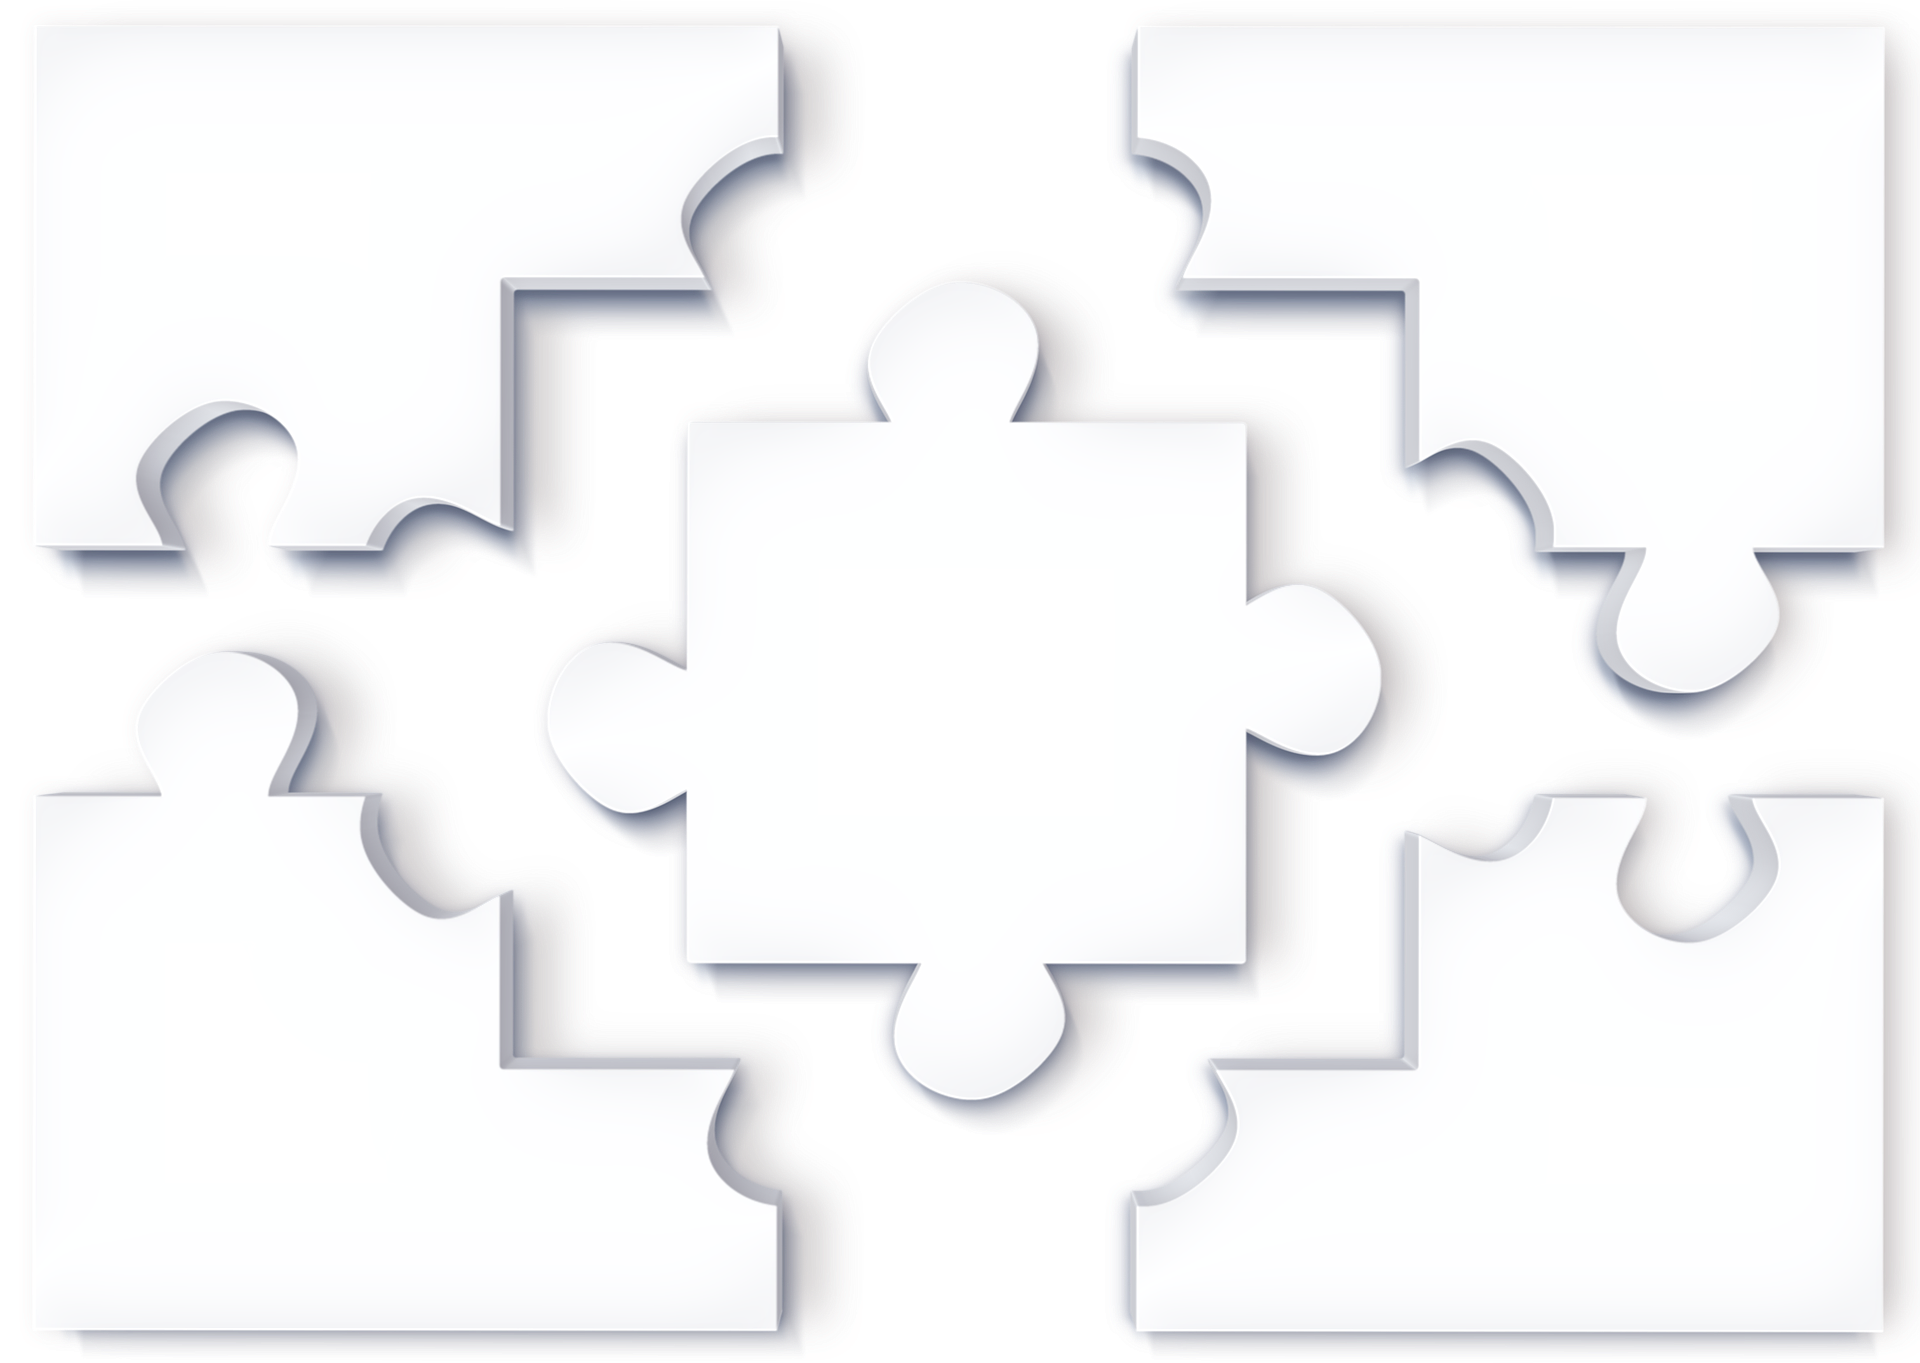 puzzle-977236_1920.png